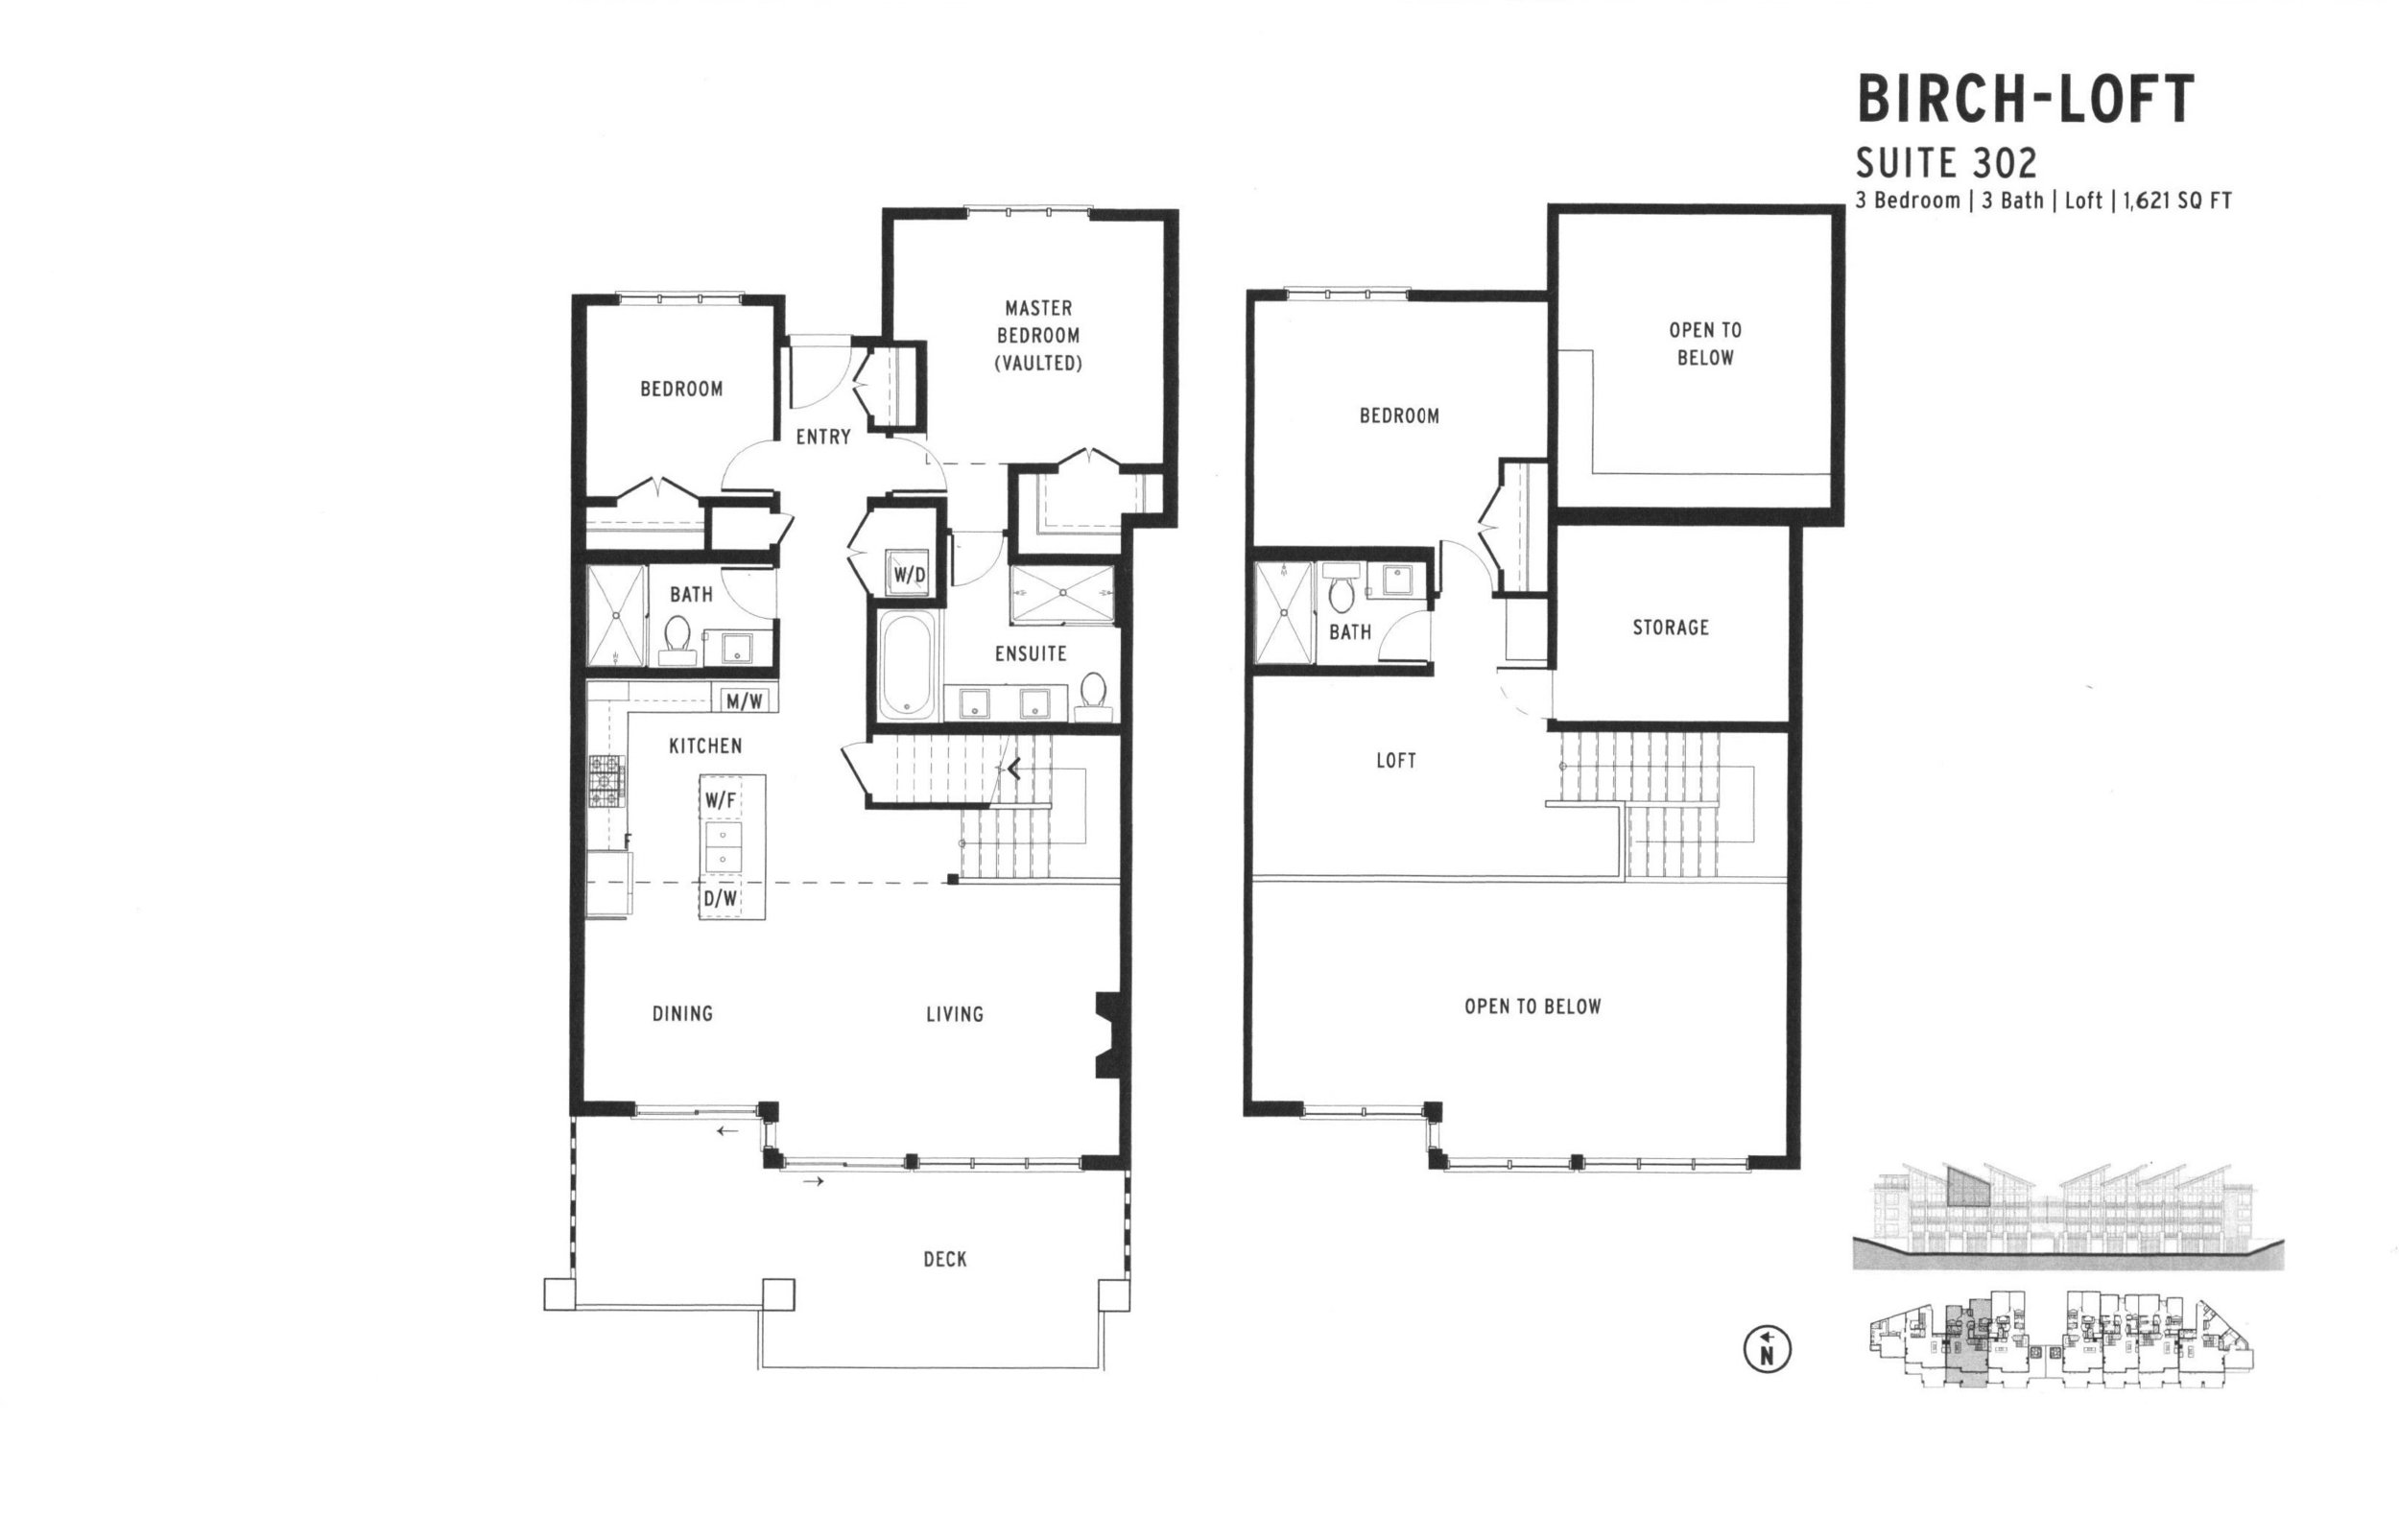 Copy of 302 - BIRCH-LOFT - $ 1,599,900